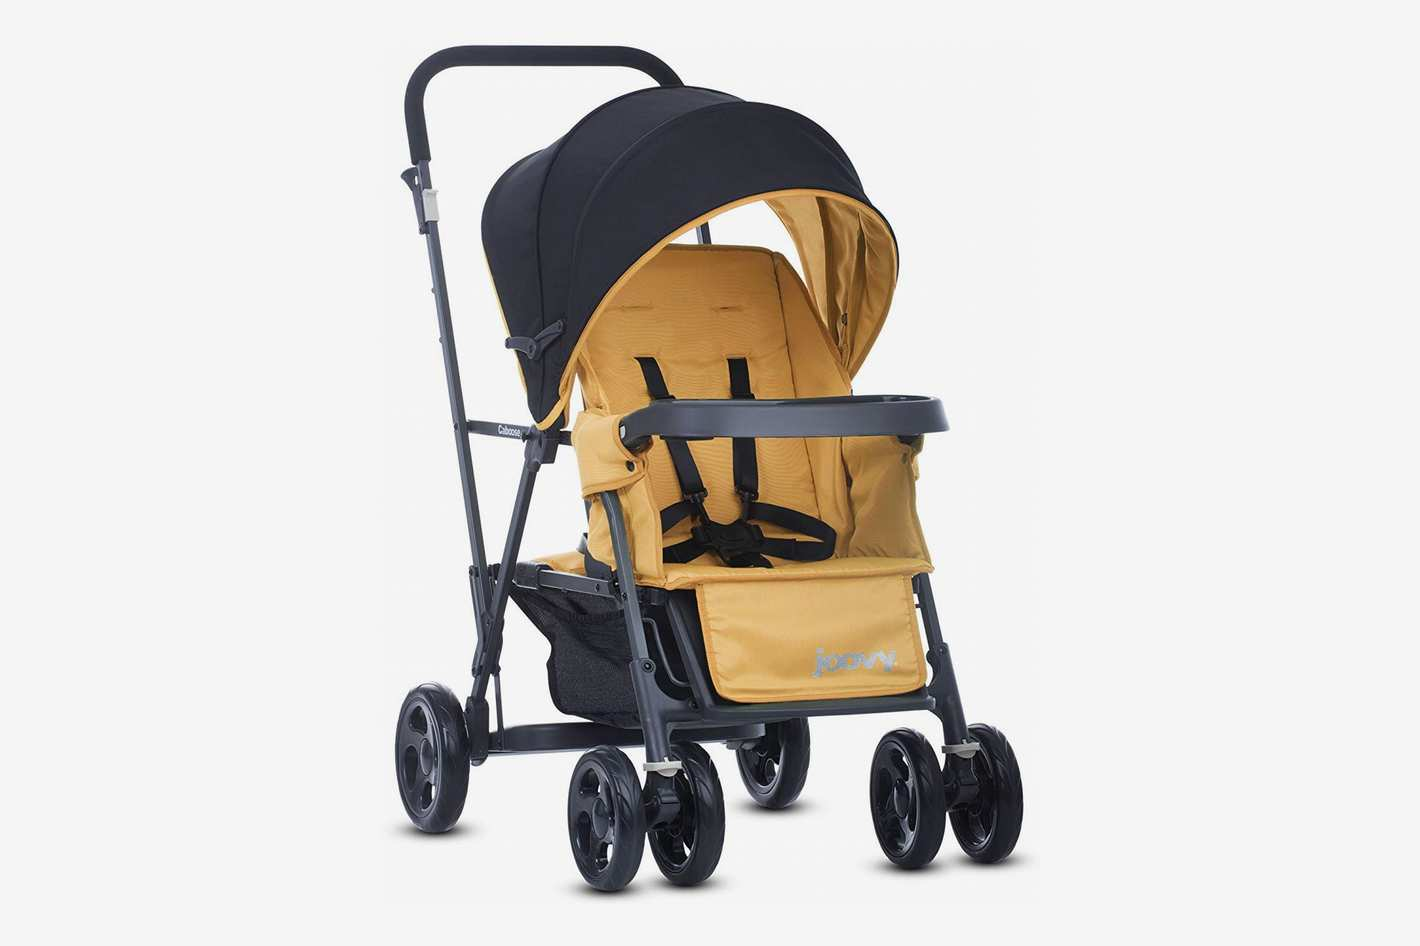 Double Stroller Expensive 8 Best Double Strollers 2019 The Strategist New York